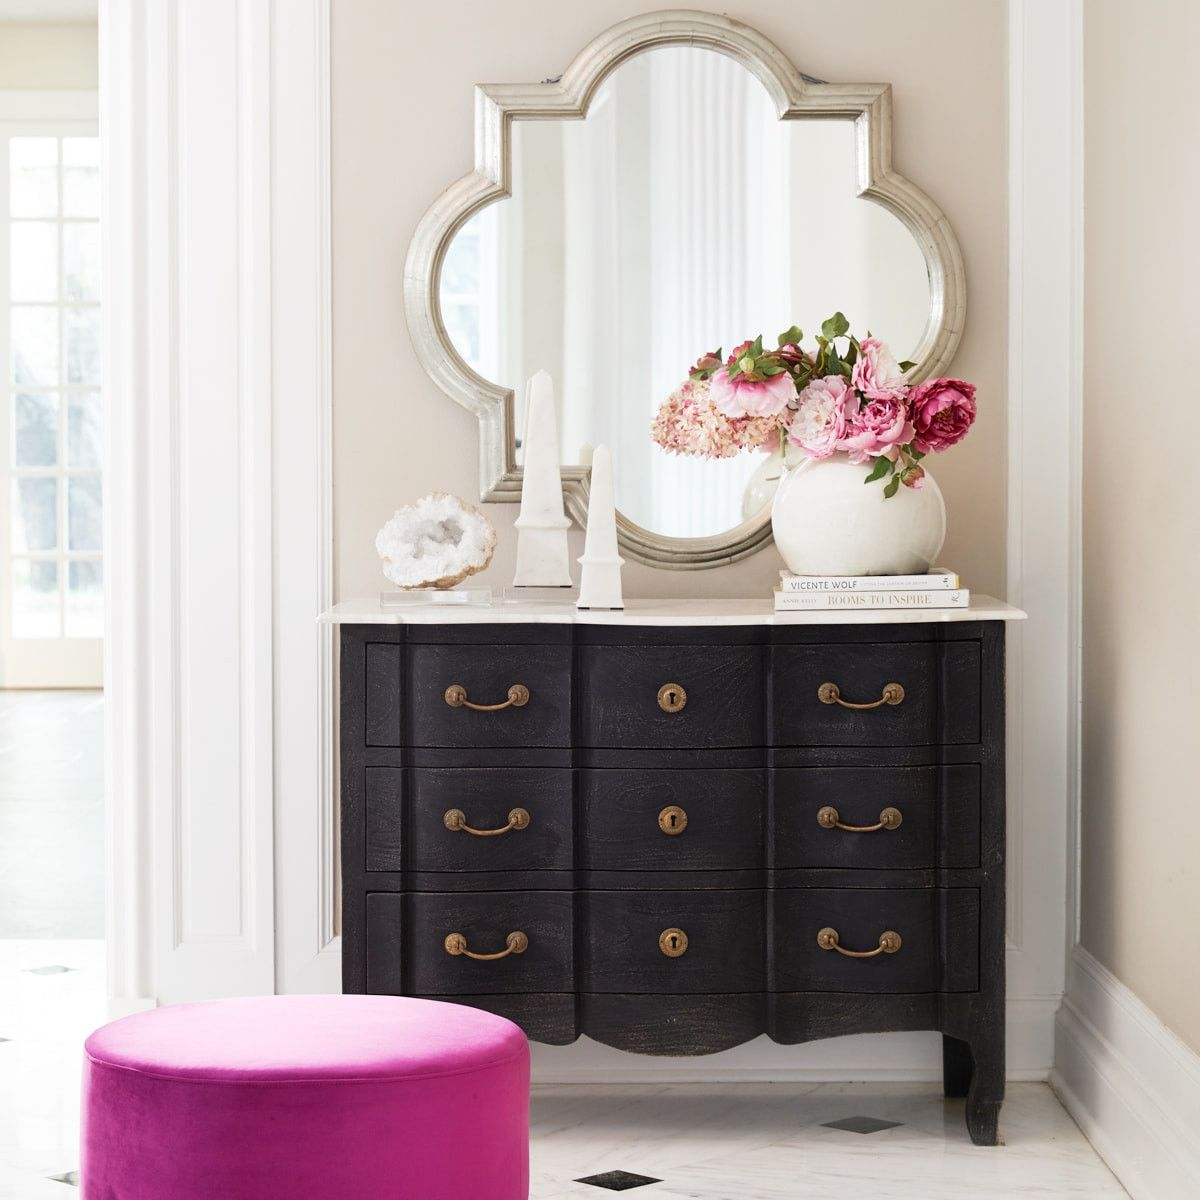 Serpentine Chest with Marble Top Marble top dresser